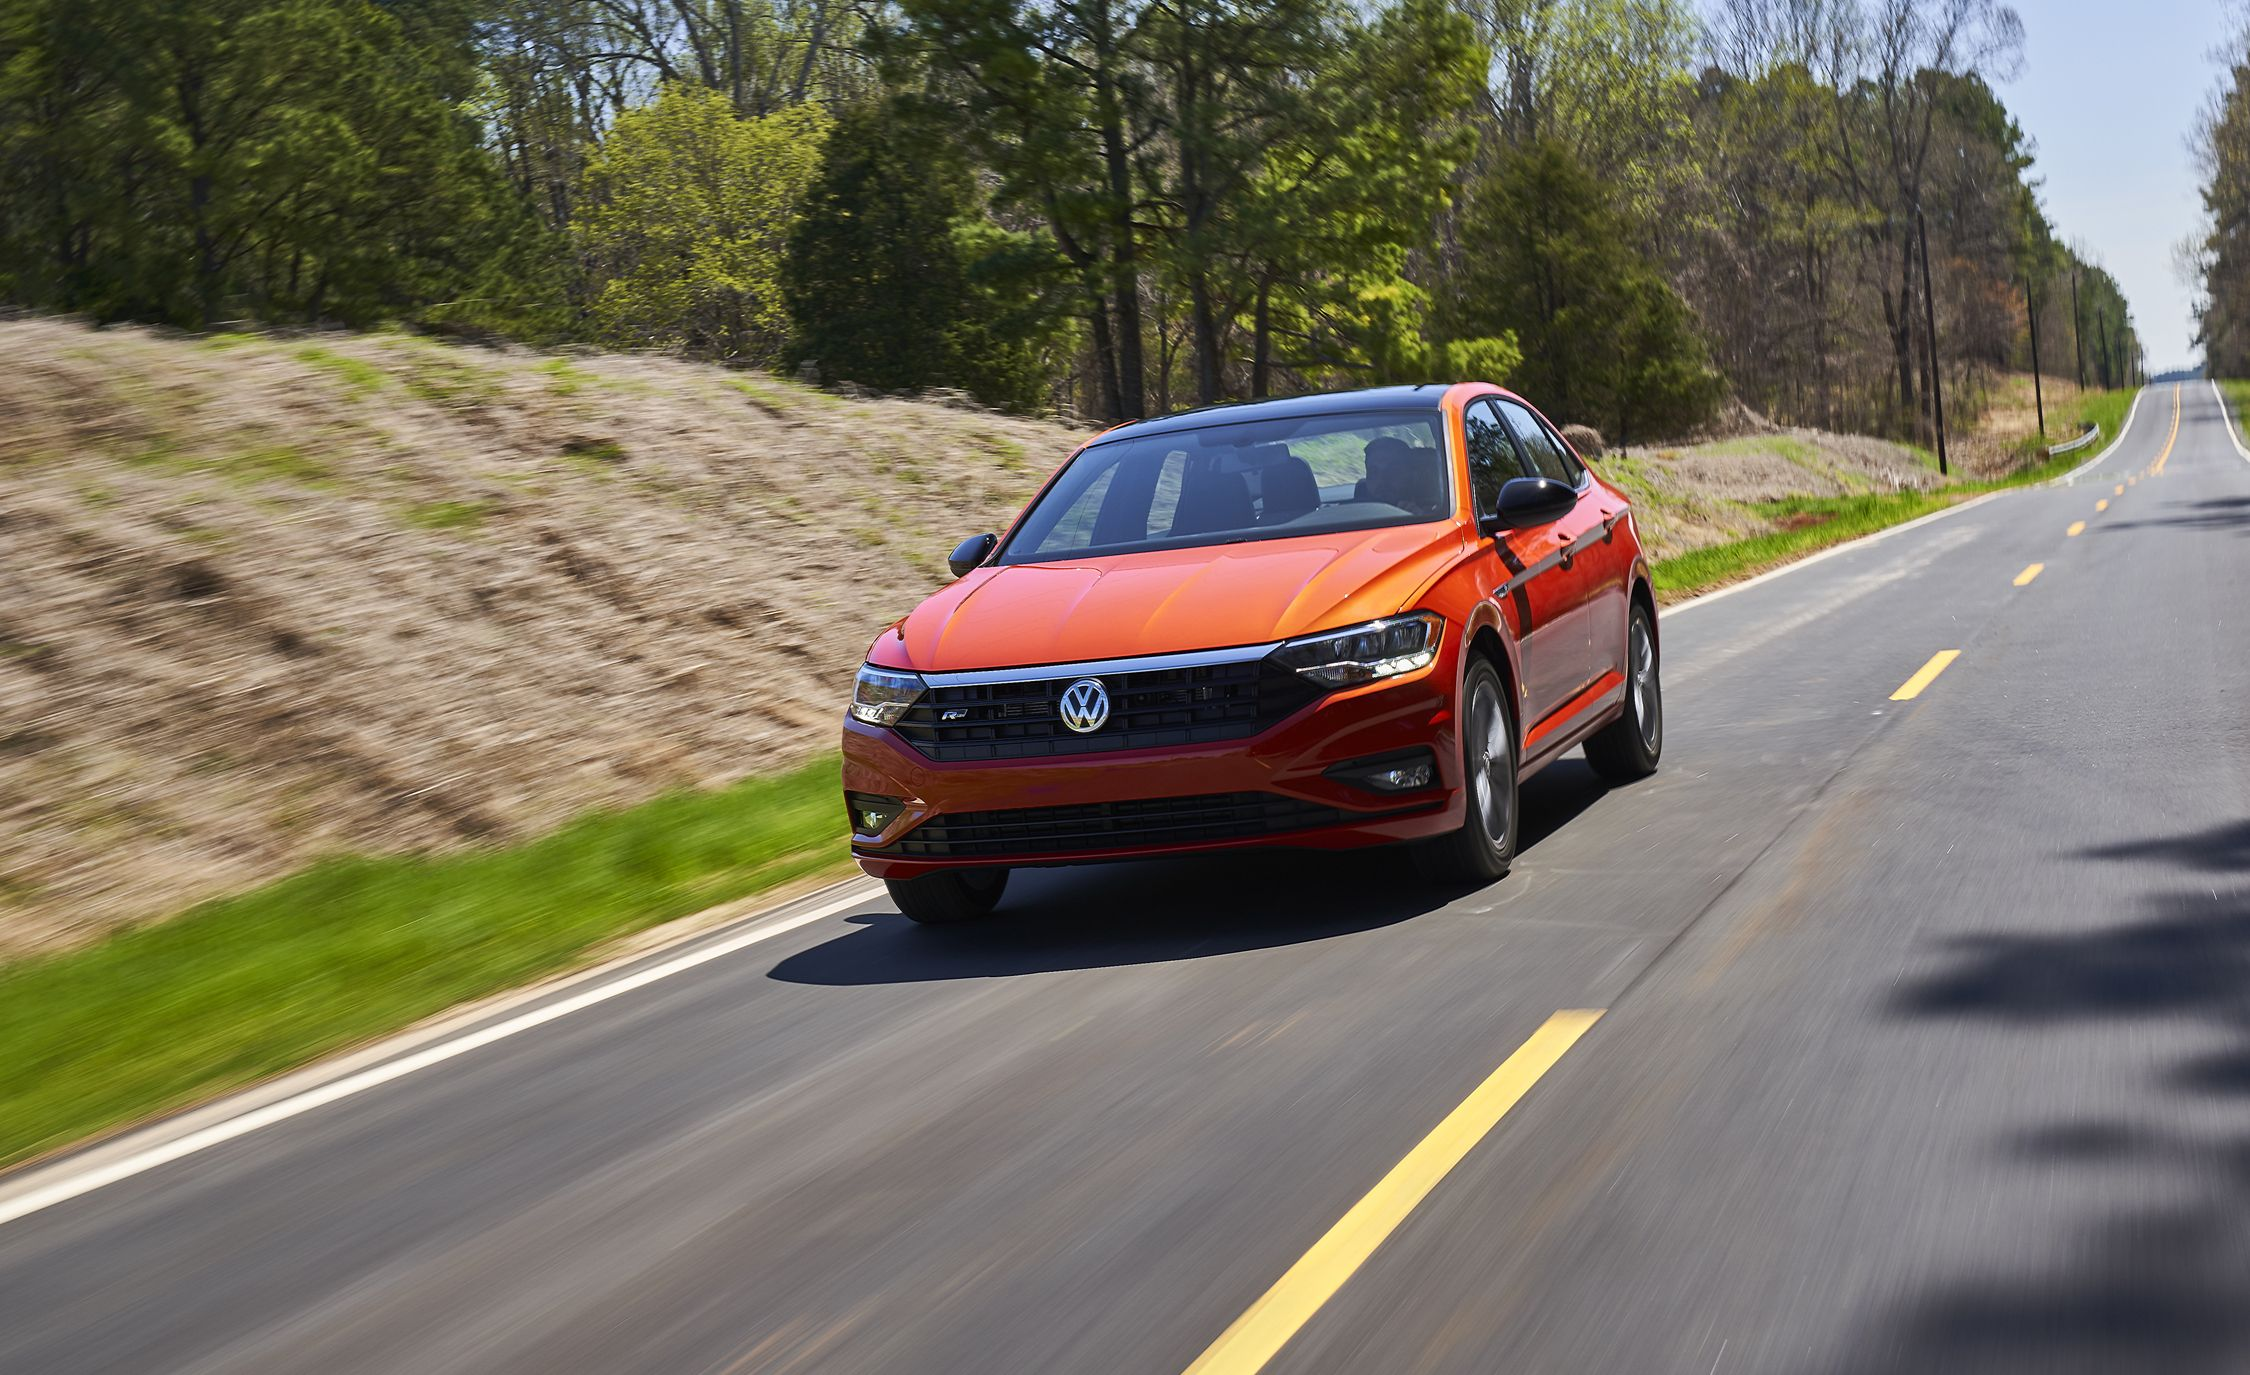 2019 Volkswagen Jetta First Drive: New Platform Does a World of Good | Review | Car and Driver